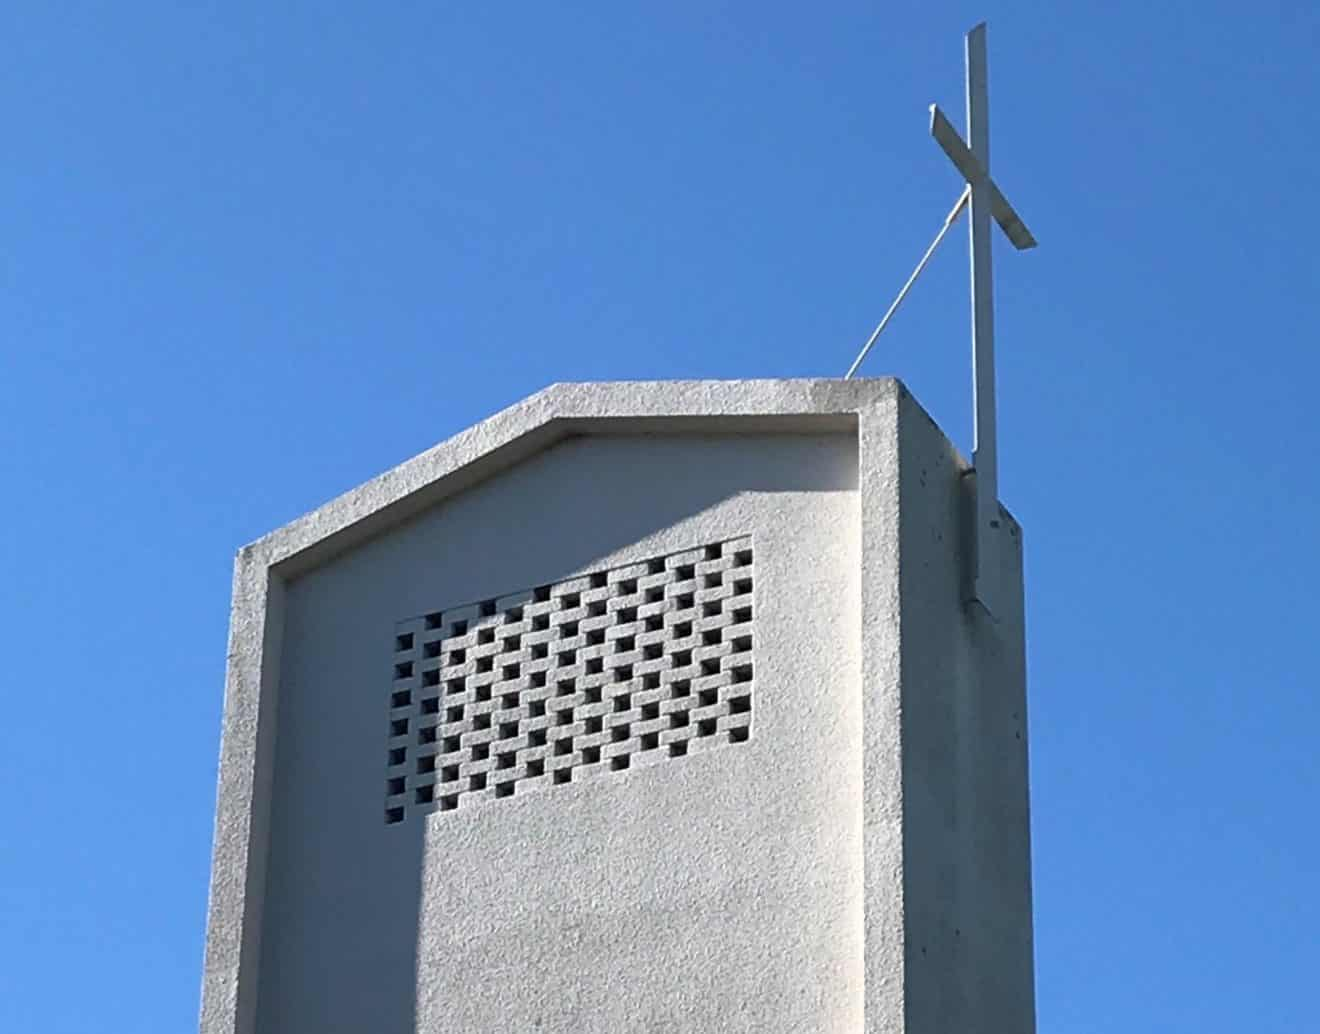 Restrictions At Tauranga Church After Initial Seismic Study